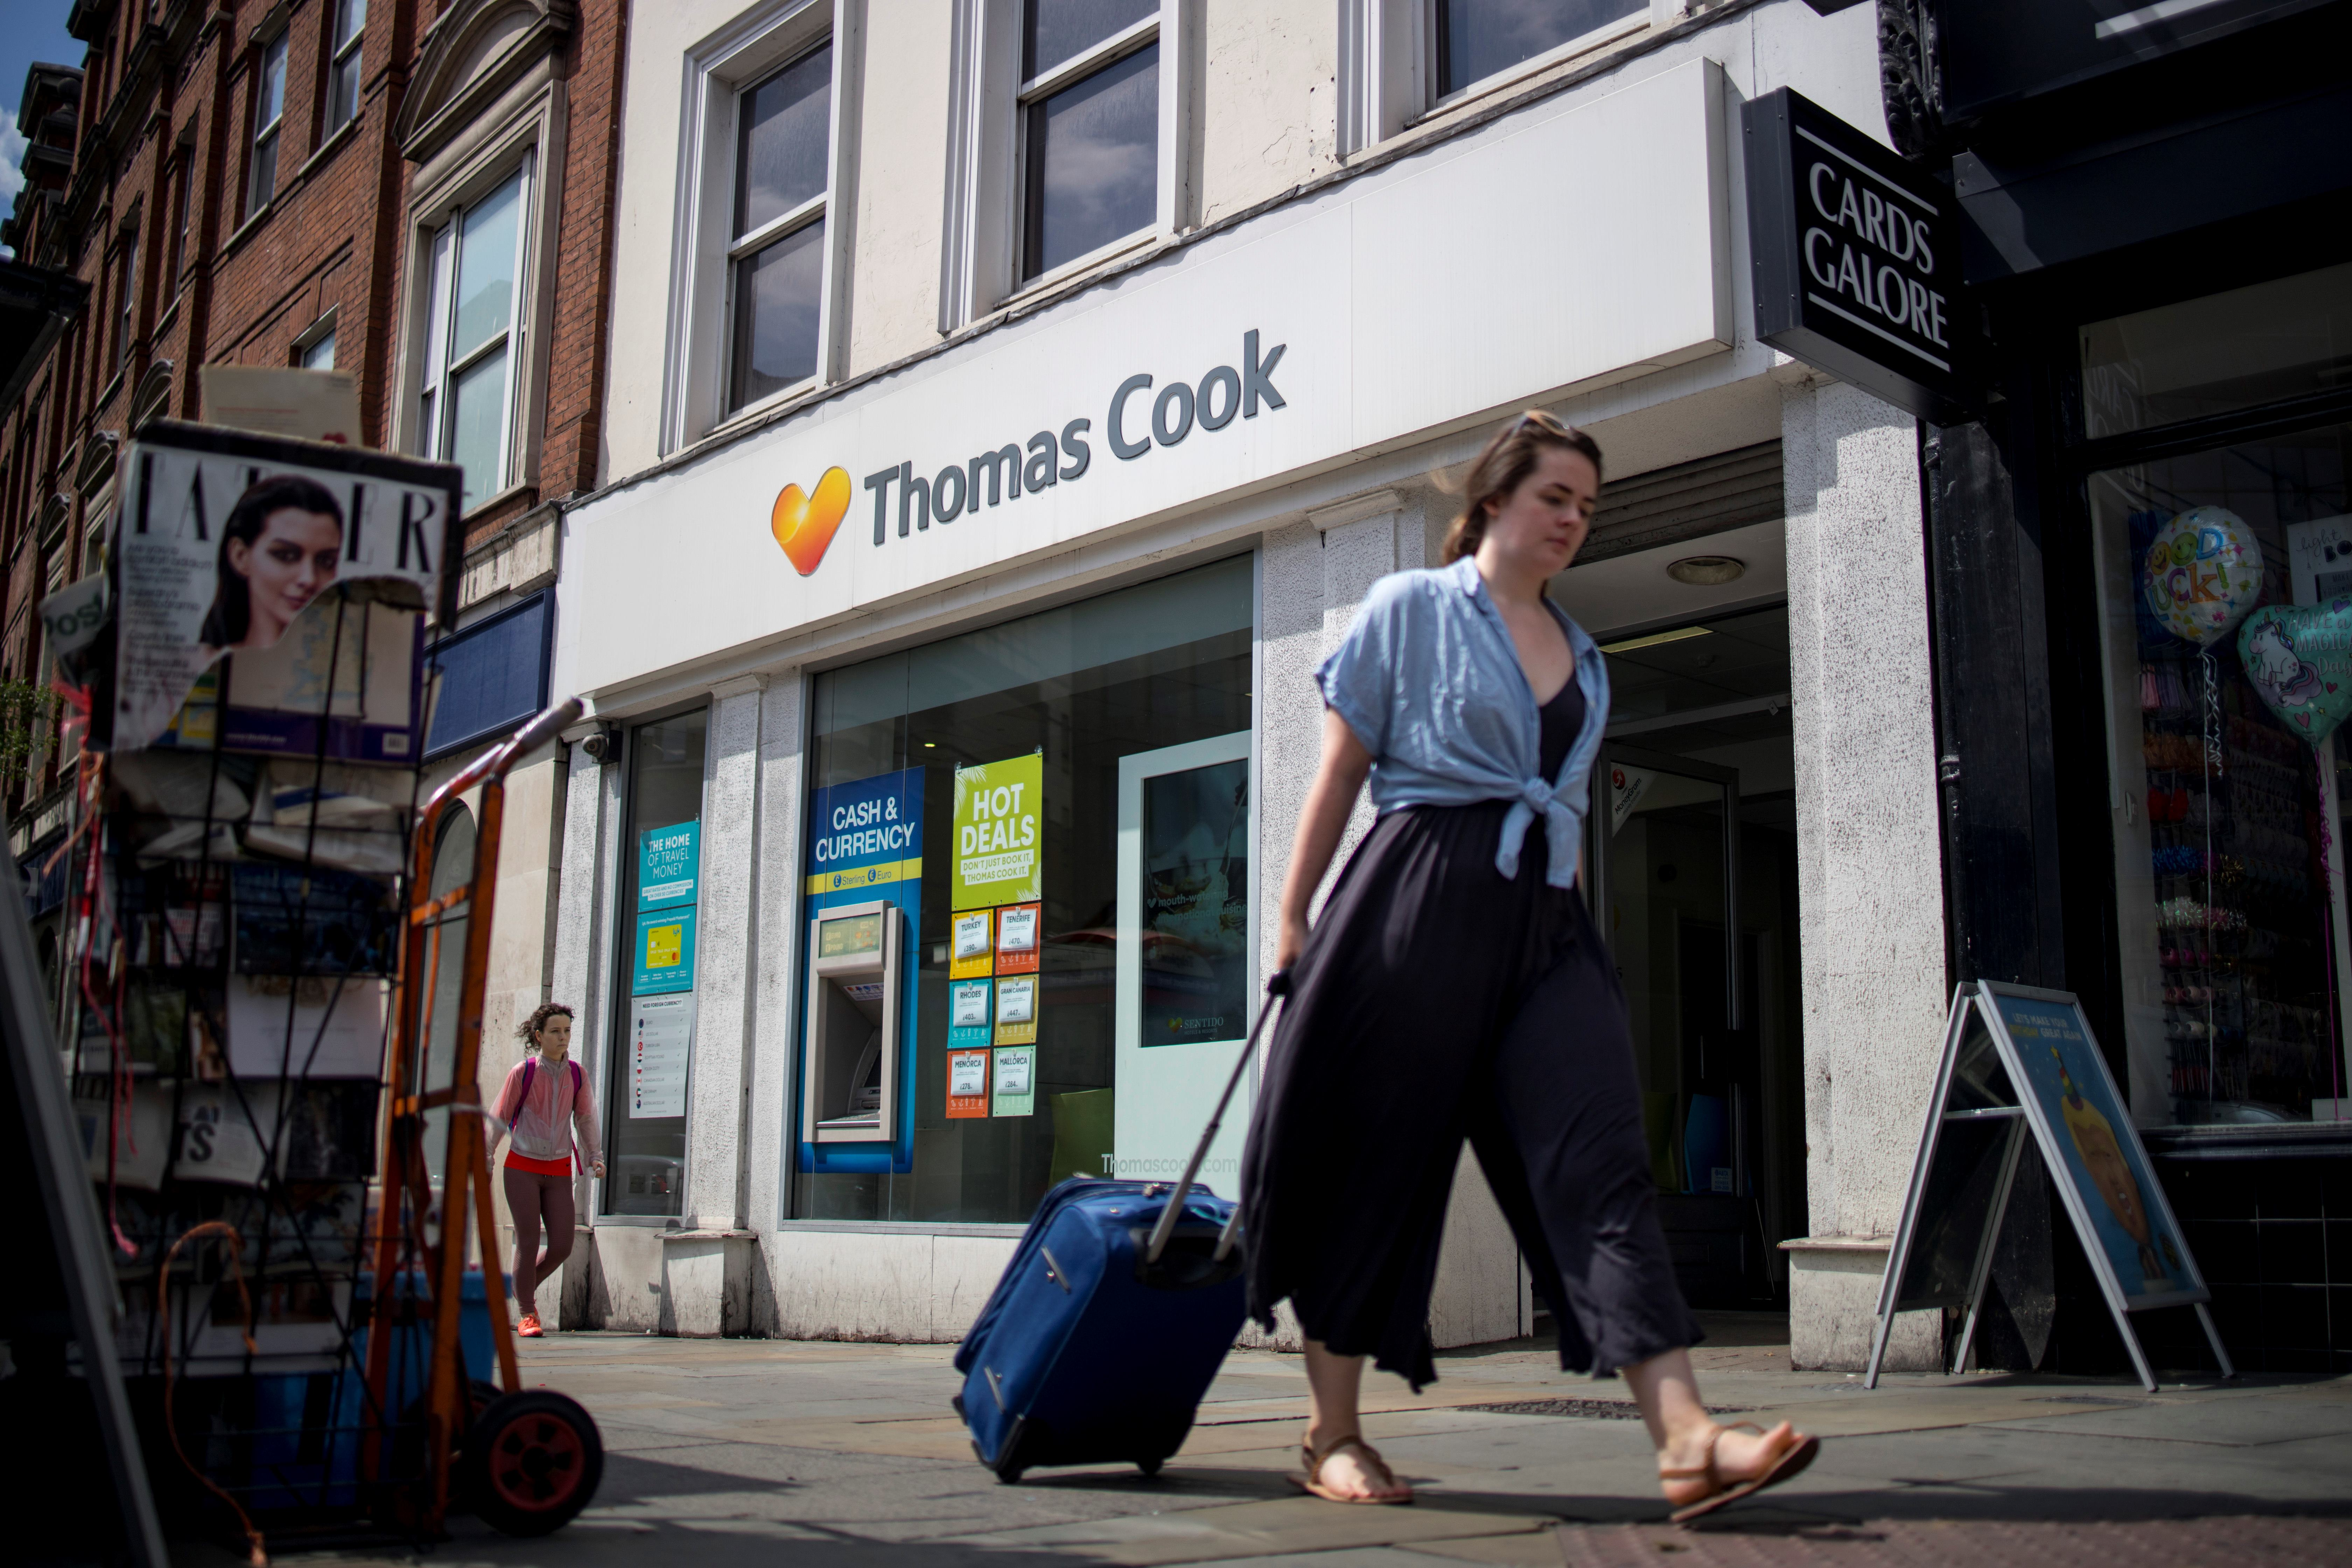 Pedestrians walk past a branch of a Thomas Cook travel agent's shop in London on July 12, 2019.